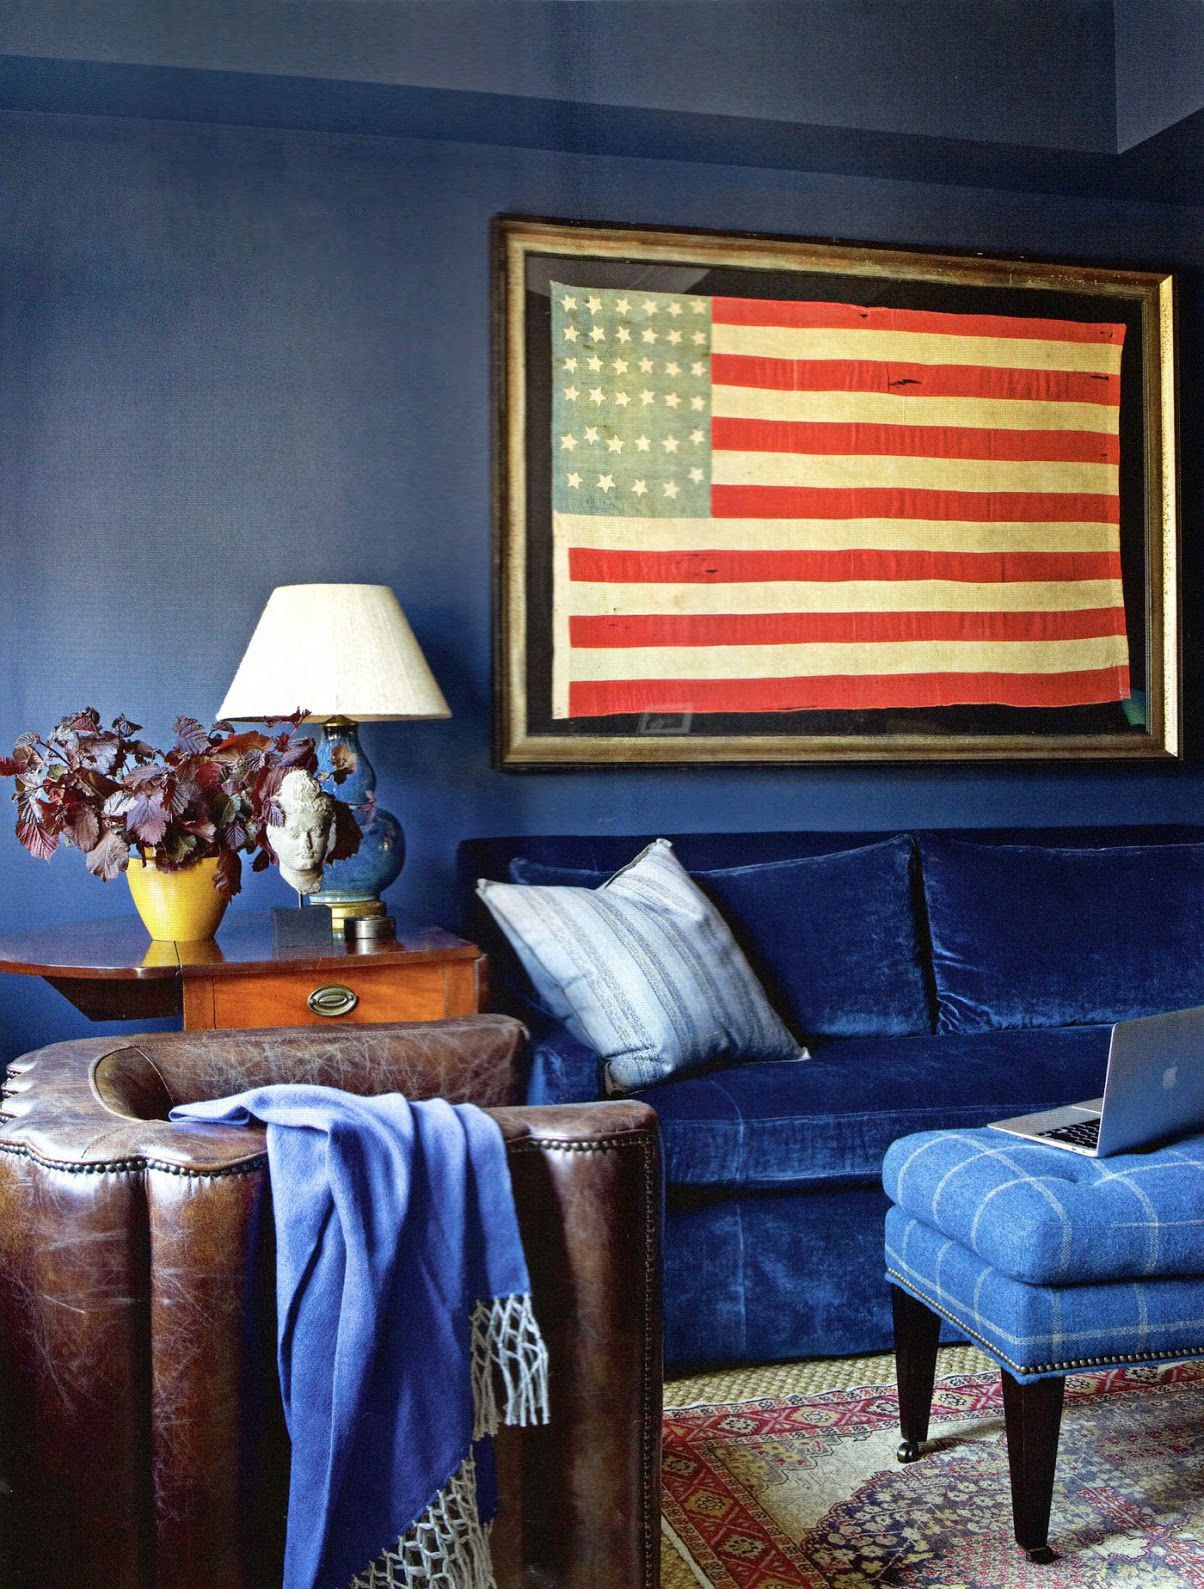 Independence Day | Pinterest | Framed american flag, Lawn service ...